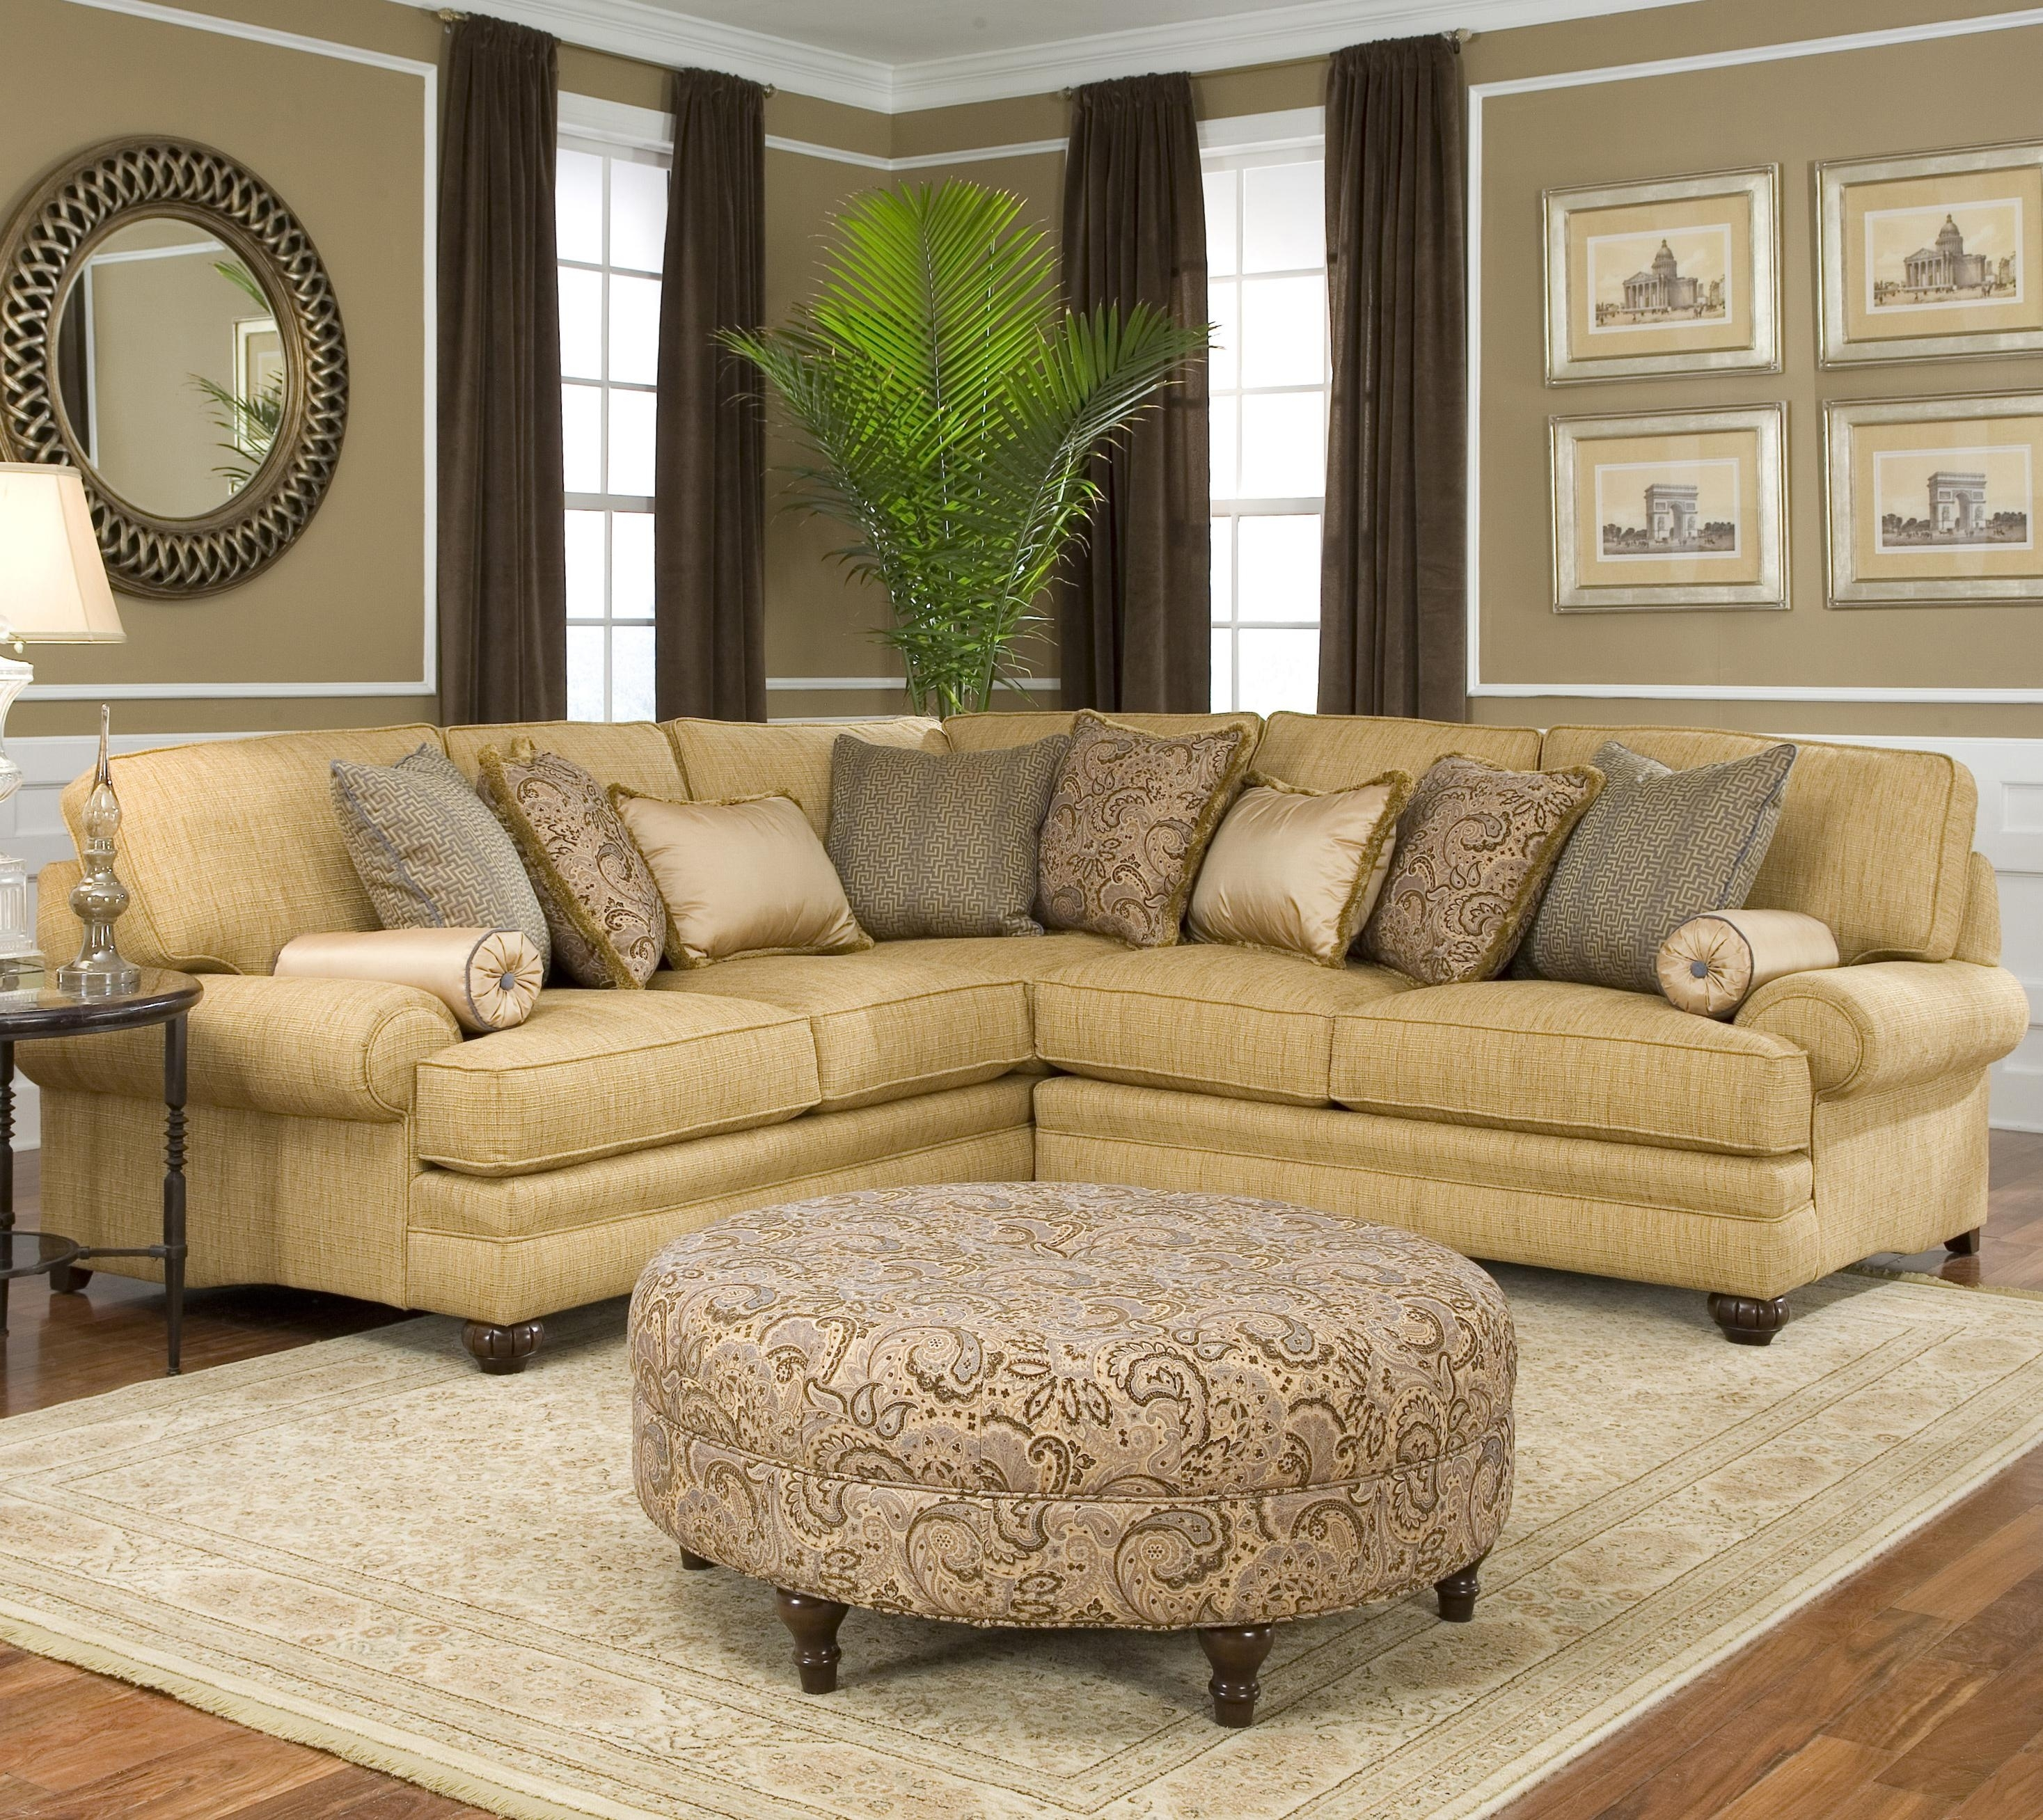 Smith Brothers 376 Traditional Styled Corner Sectional Sofa With Rounded Corner Sectional Sofas (Image 8 of 10)